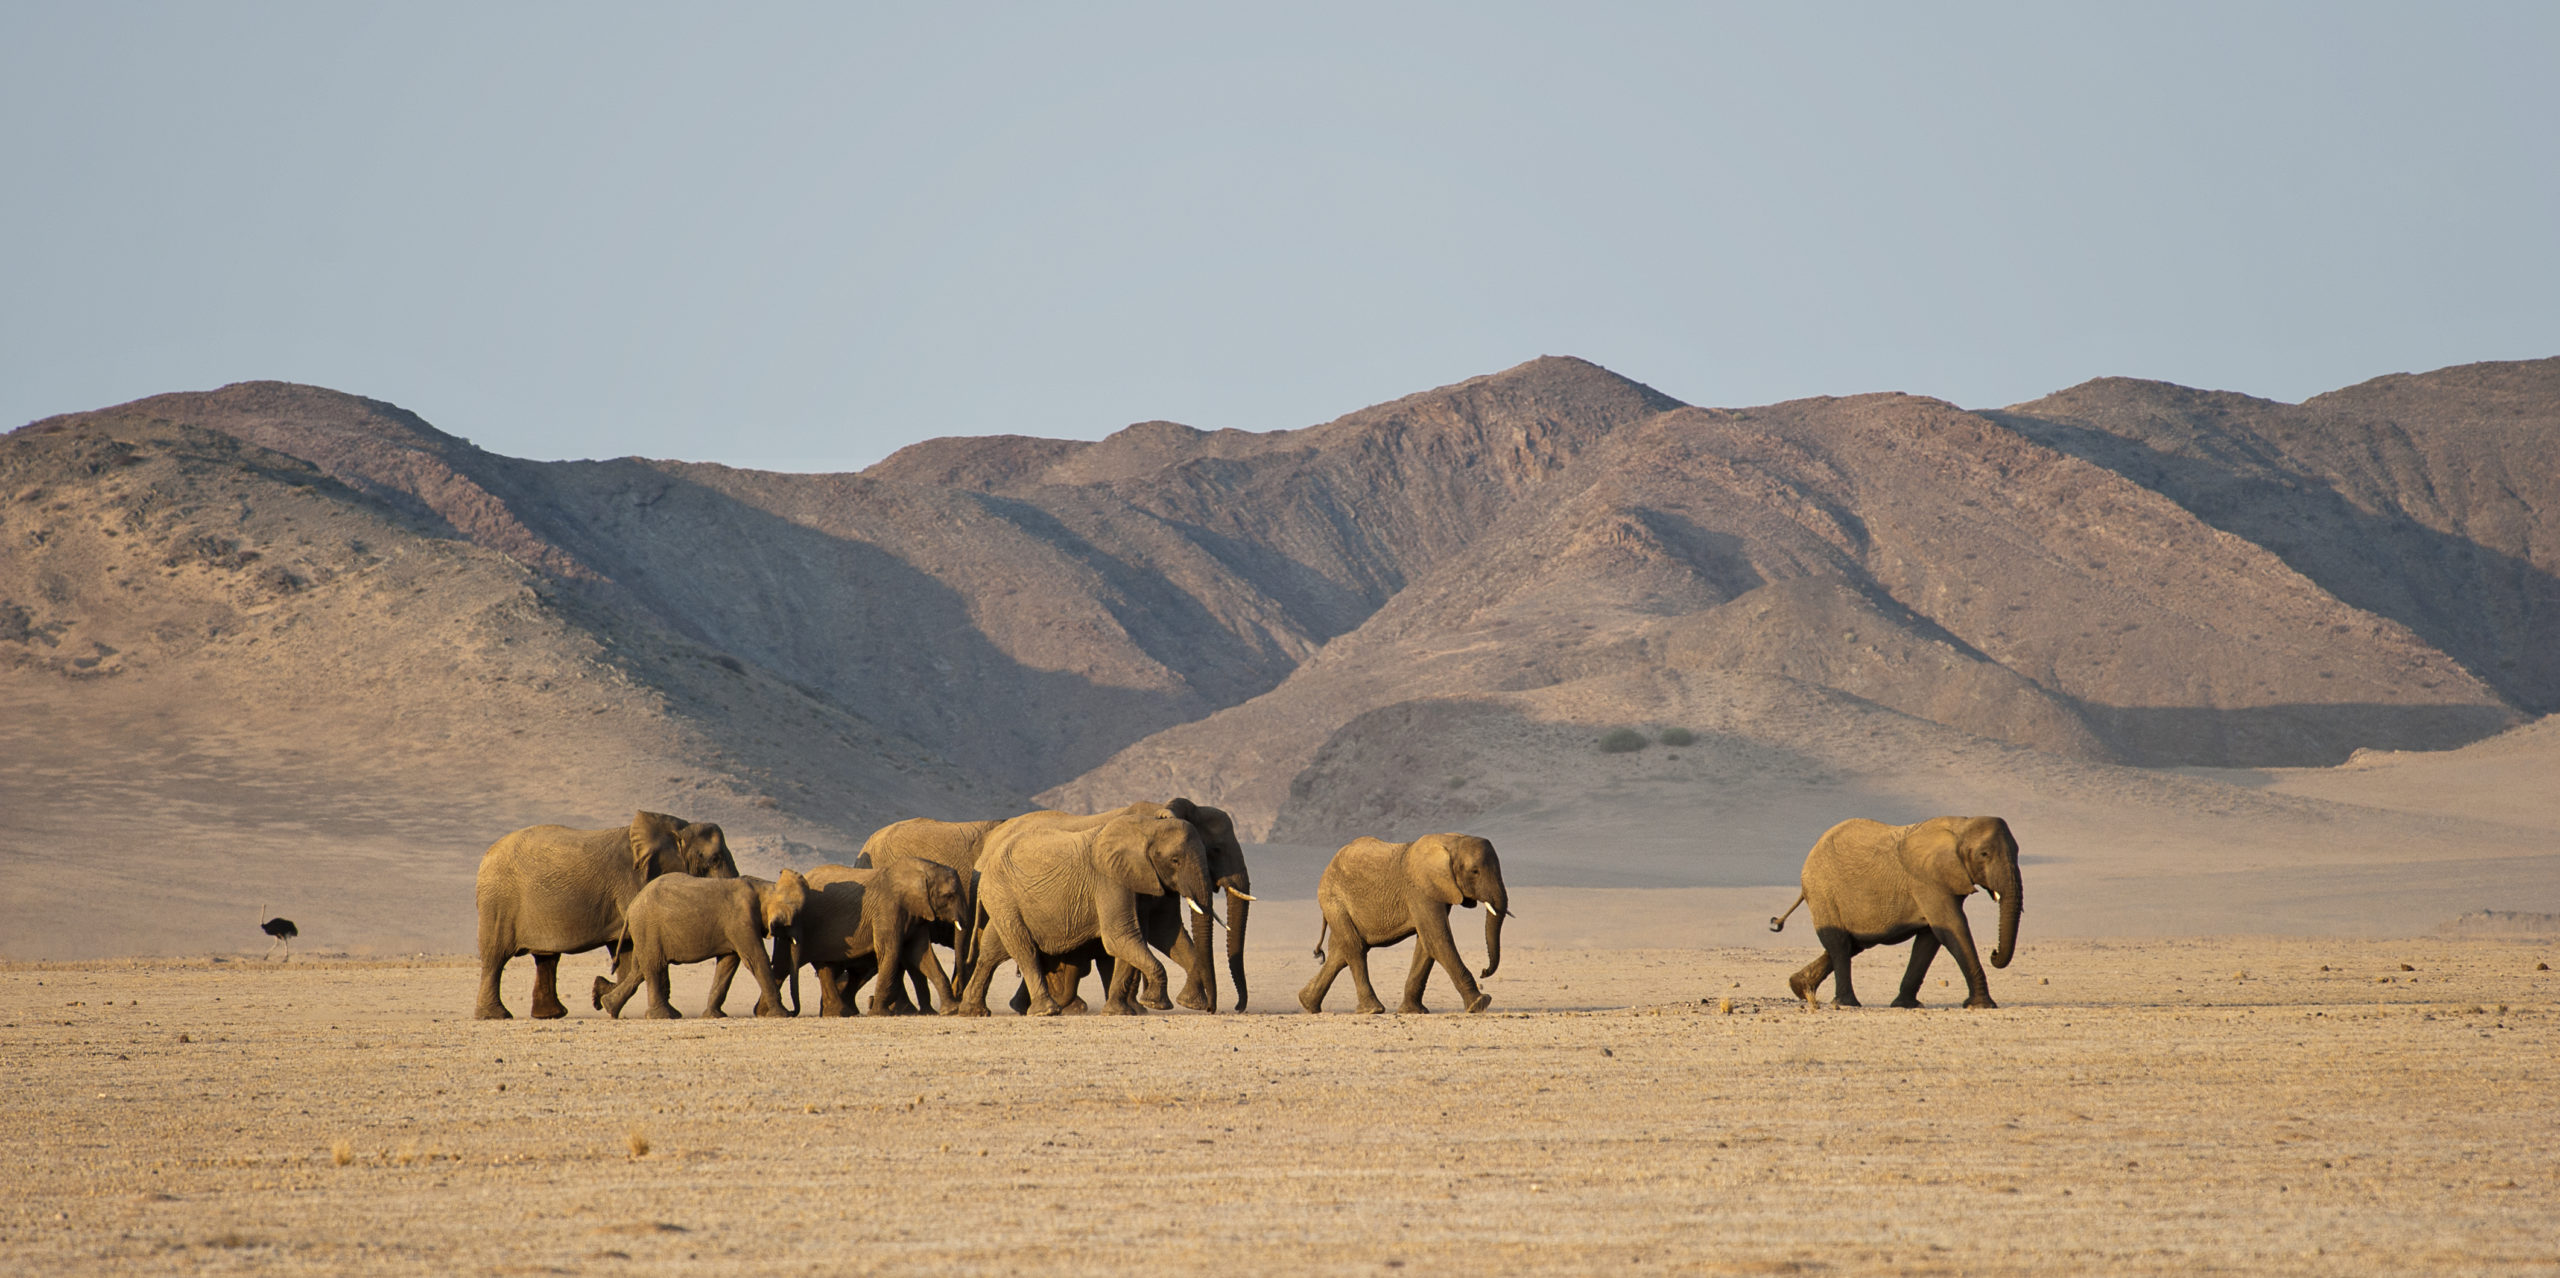 Elephants Namibia